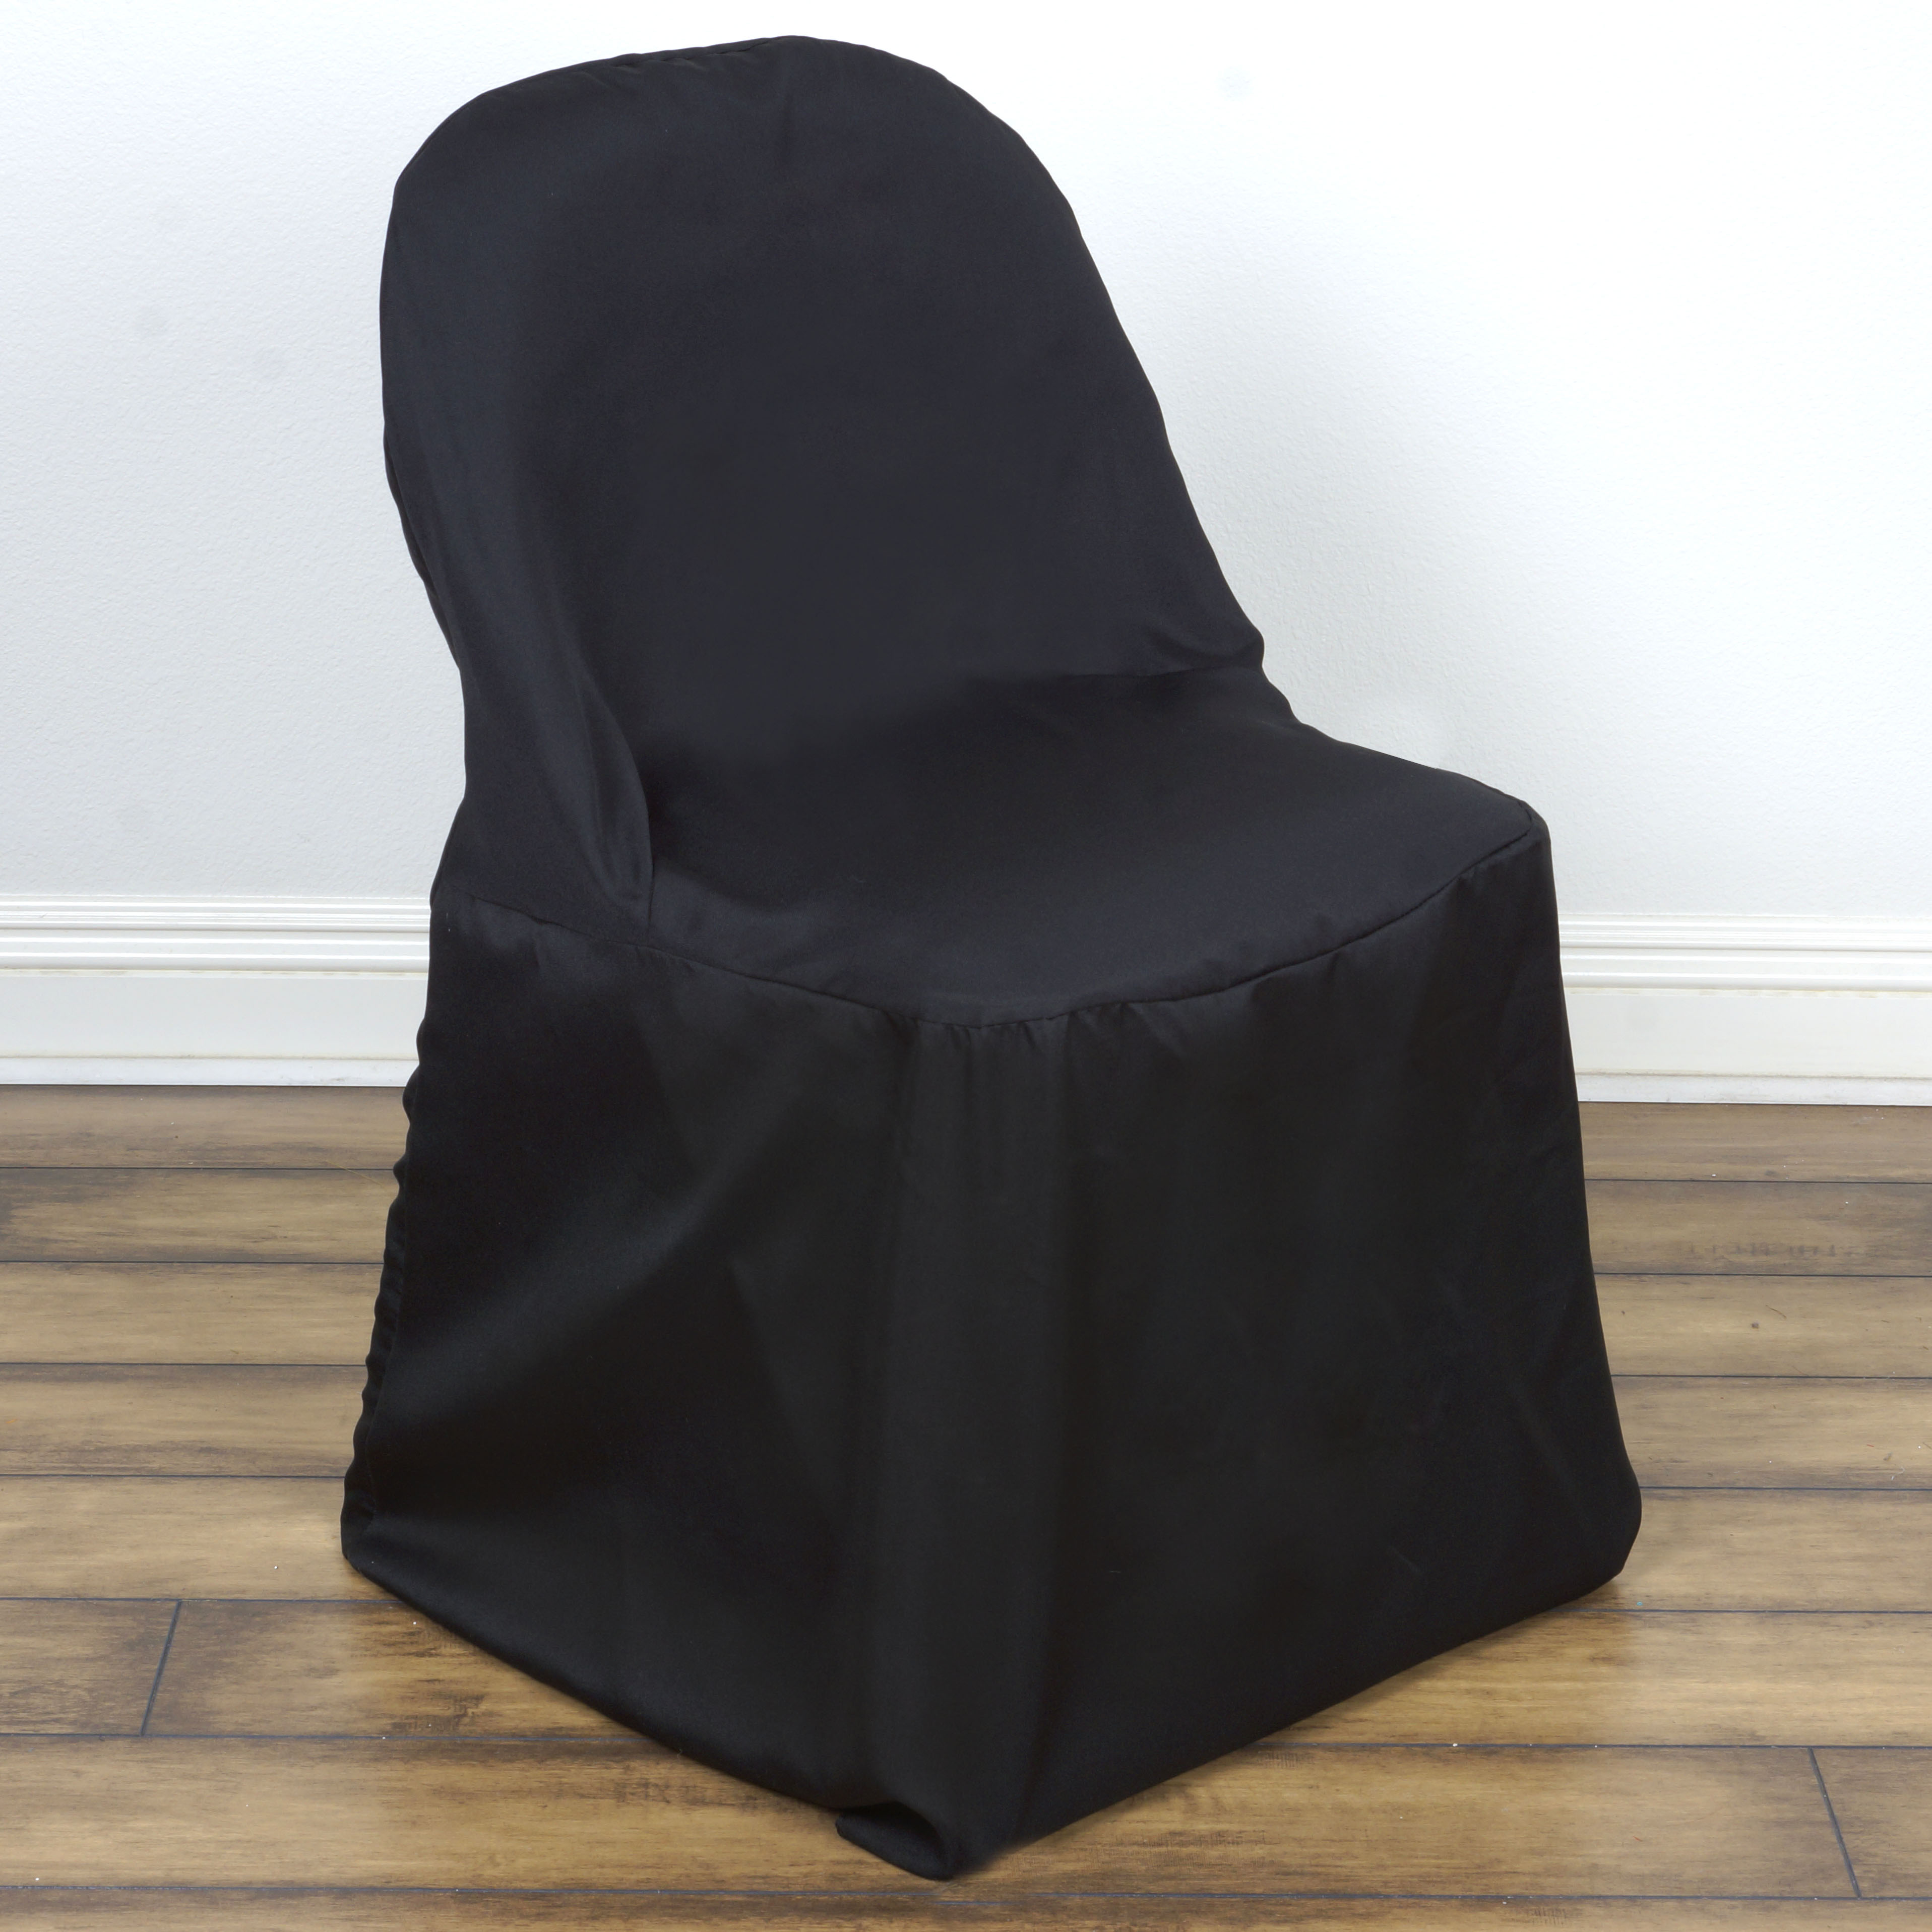 round folding chair covers wedding party dinner decorations on sale